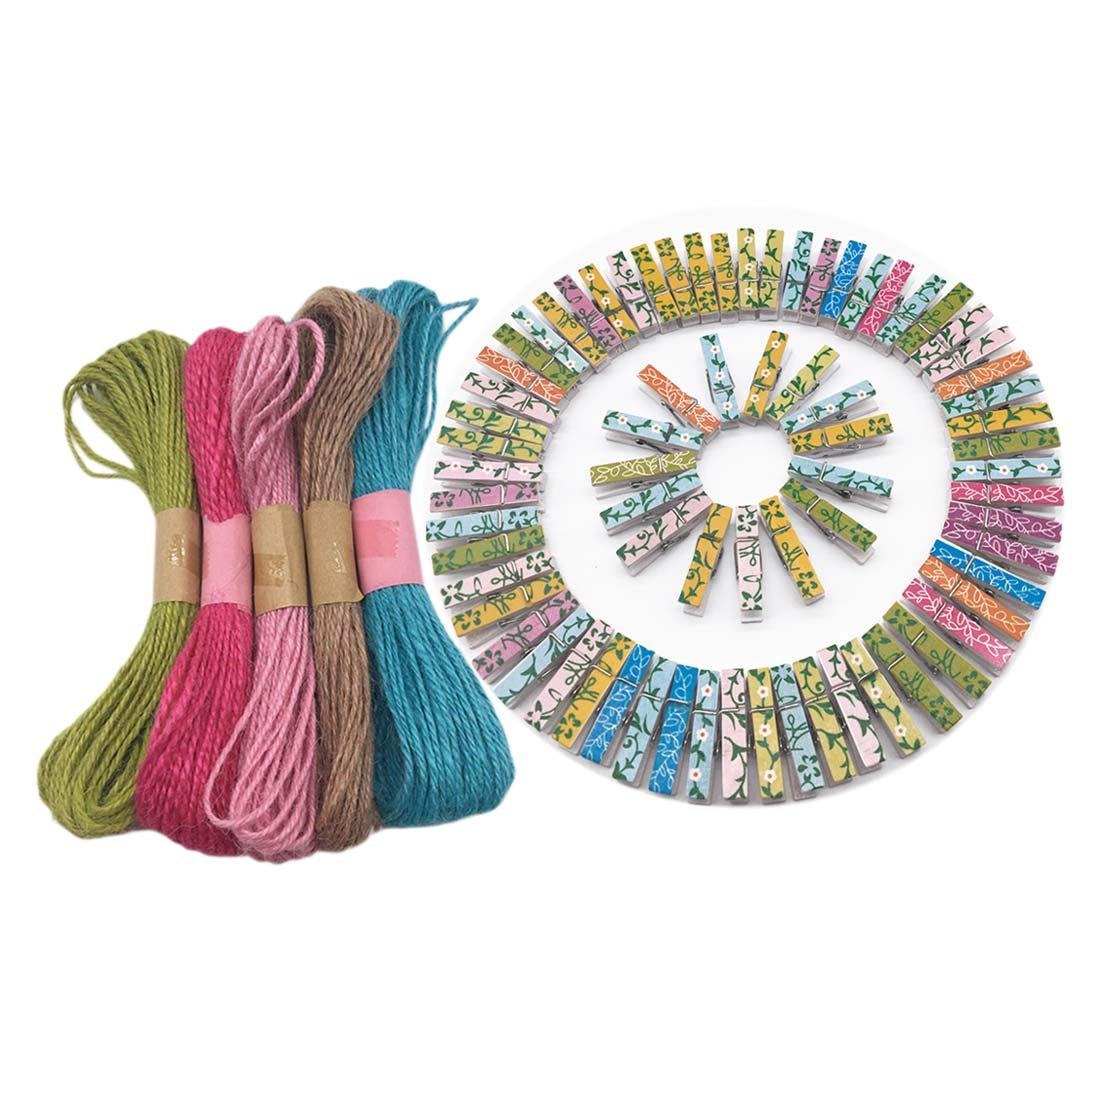 Pack of 100 Mini Wooden Photo Paper Clip Craft Clips Clothes Pin Clothes Line Clips with 5 Skein Jute Twines, 32 ft per Skein (Colorful-Style 2)